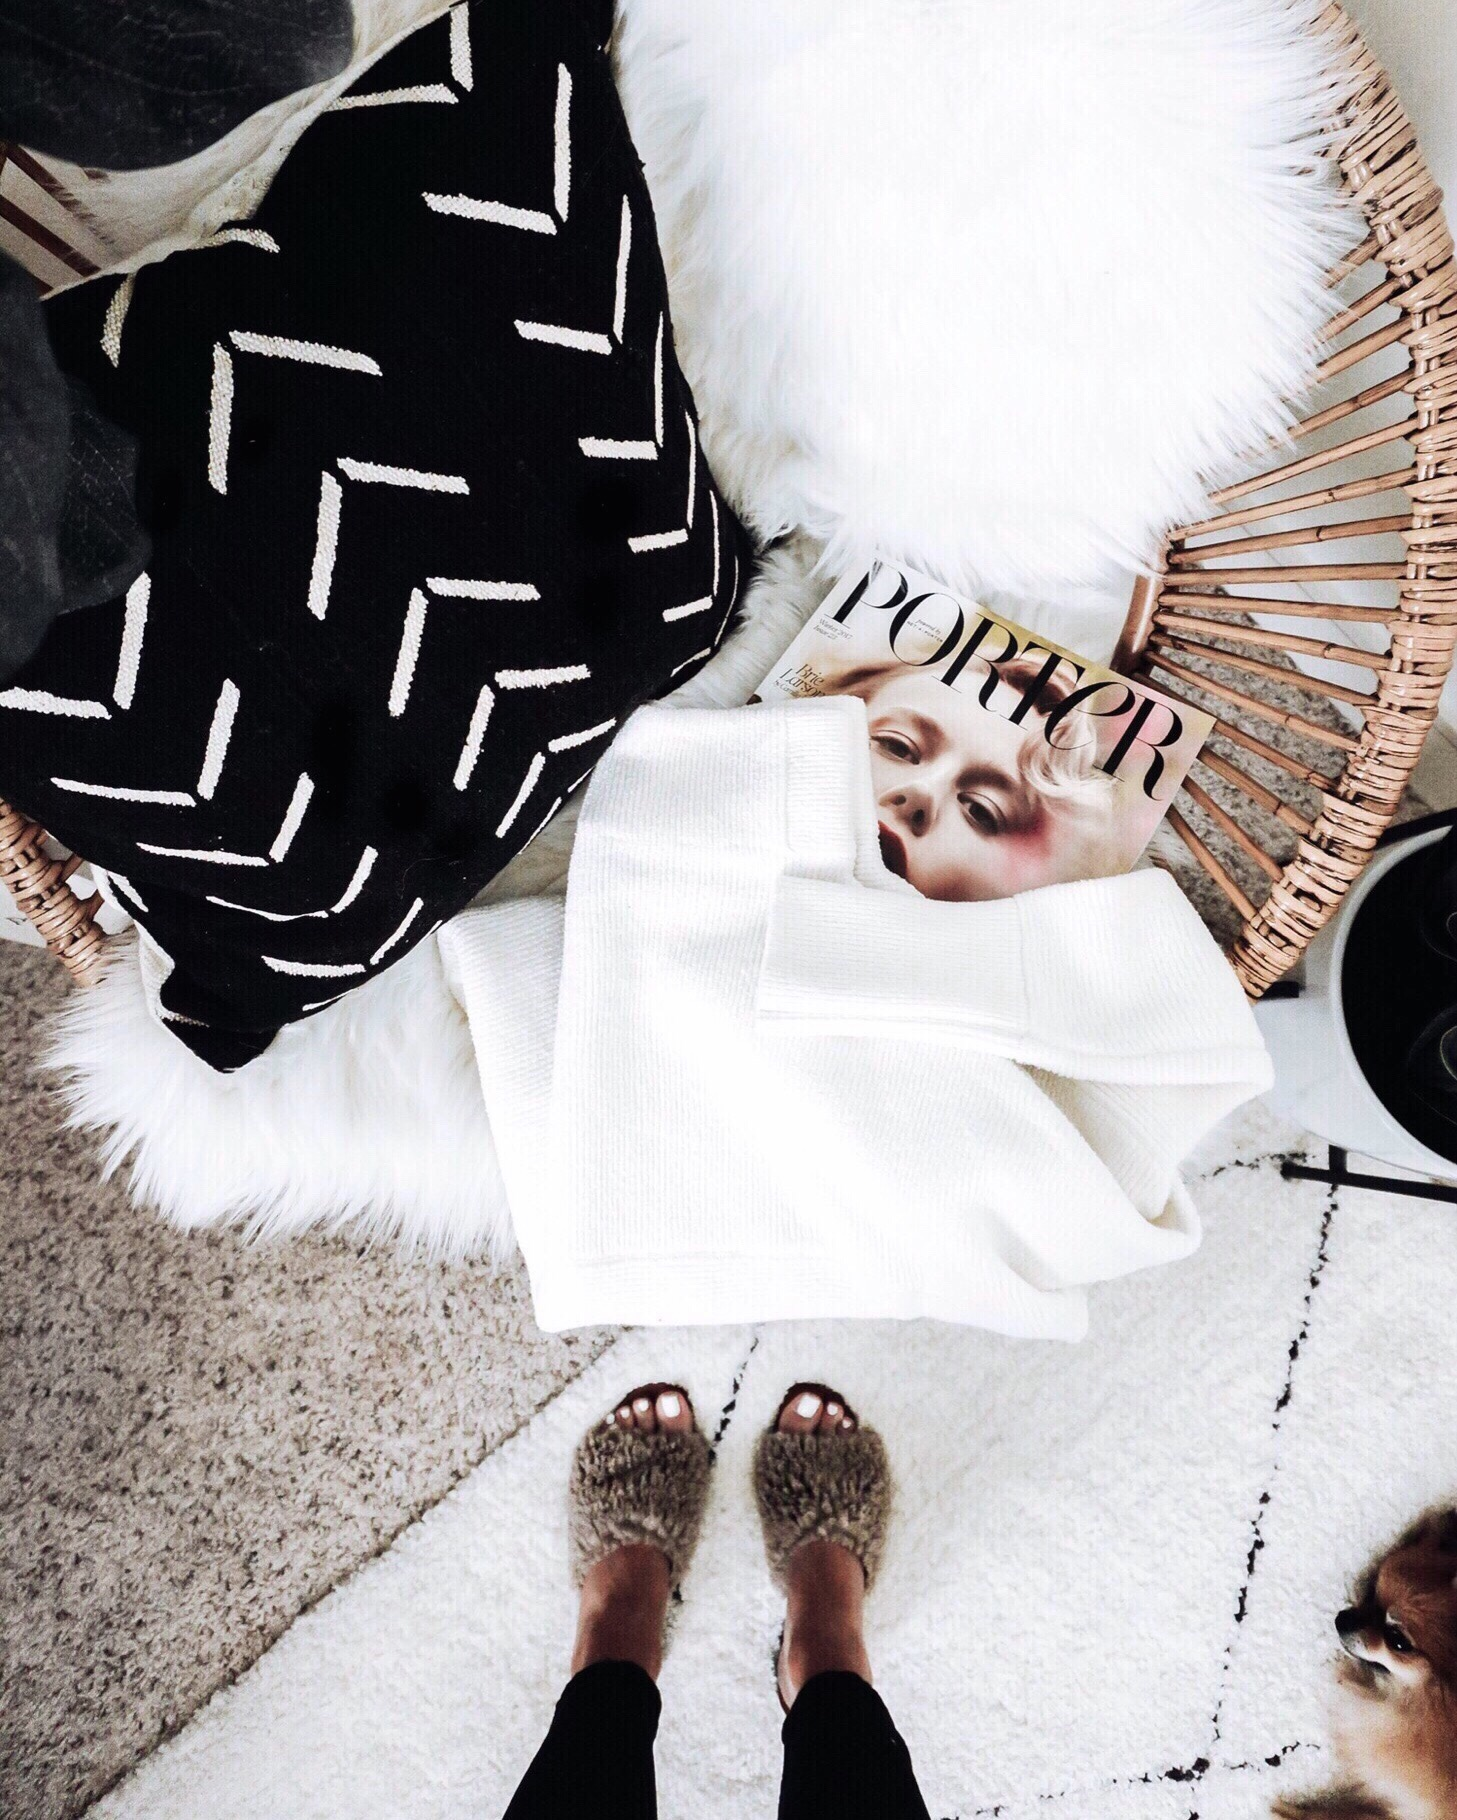 friday Feels | Click to shop| Stocking up on Cozy knits! This one by Free People is hands down my favorite buy so far this year! Runs large I ordered the xs and it still has lots of room!